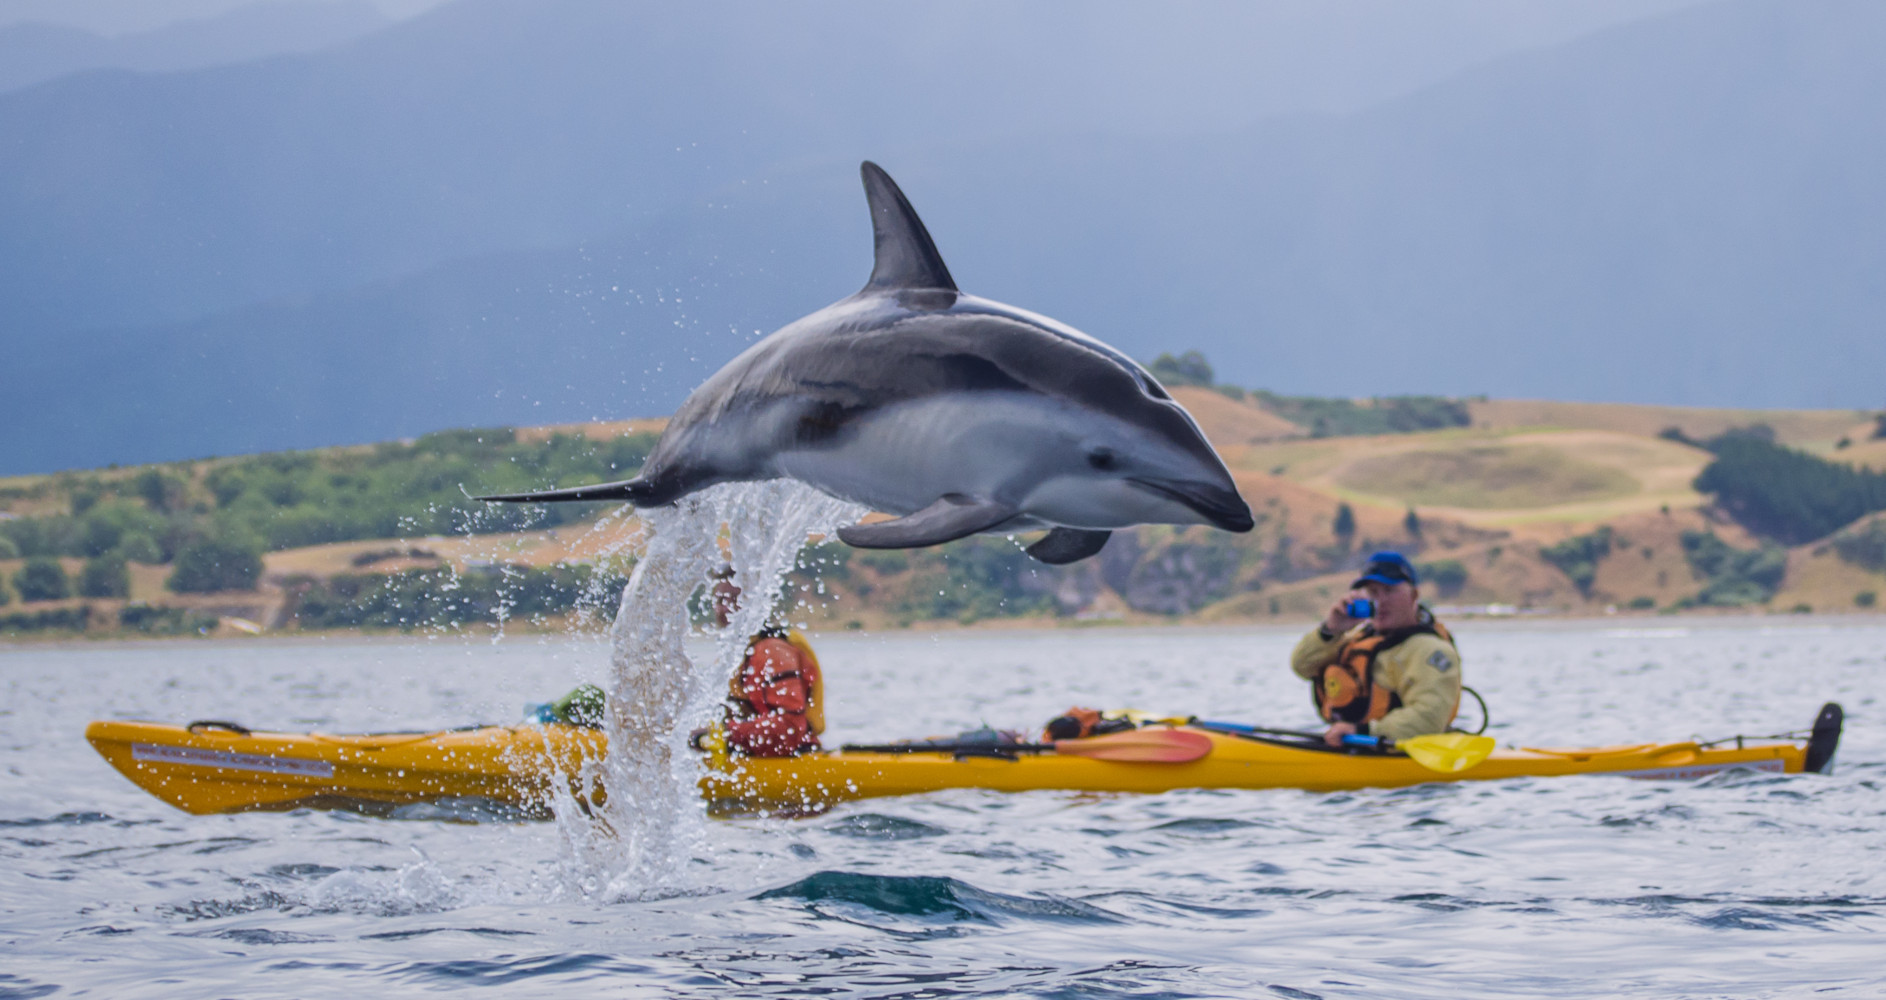 Dolphin leaping out of water in front of kayay